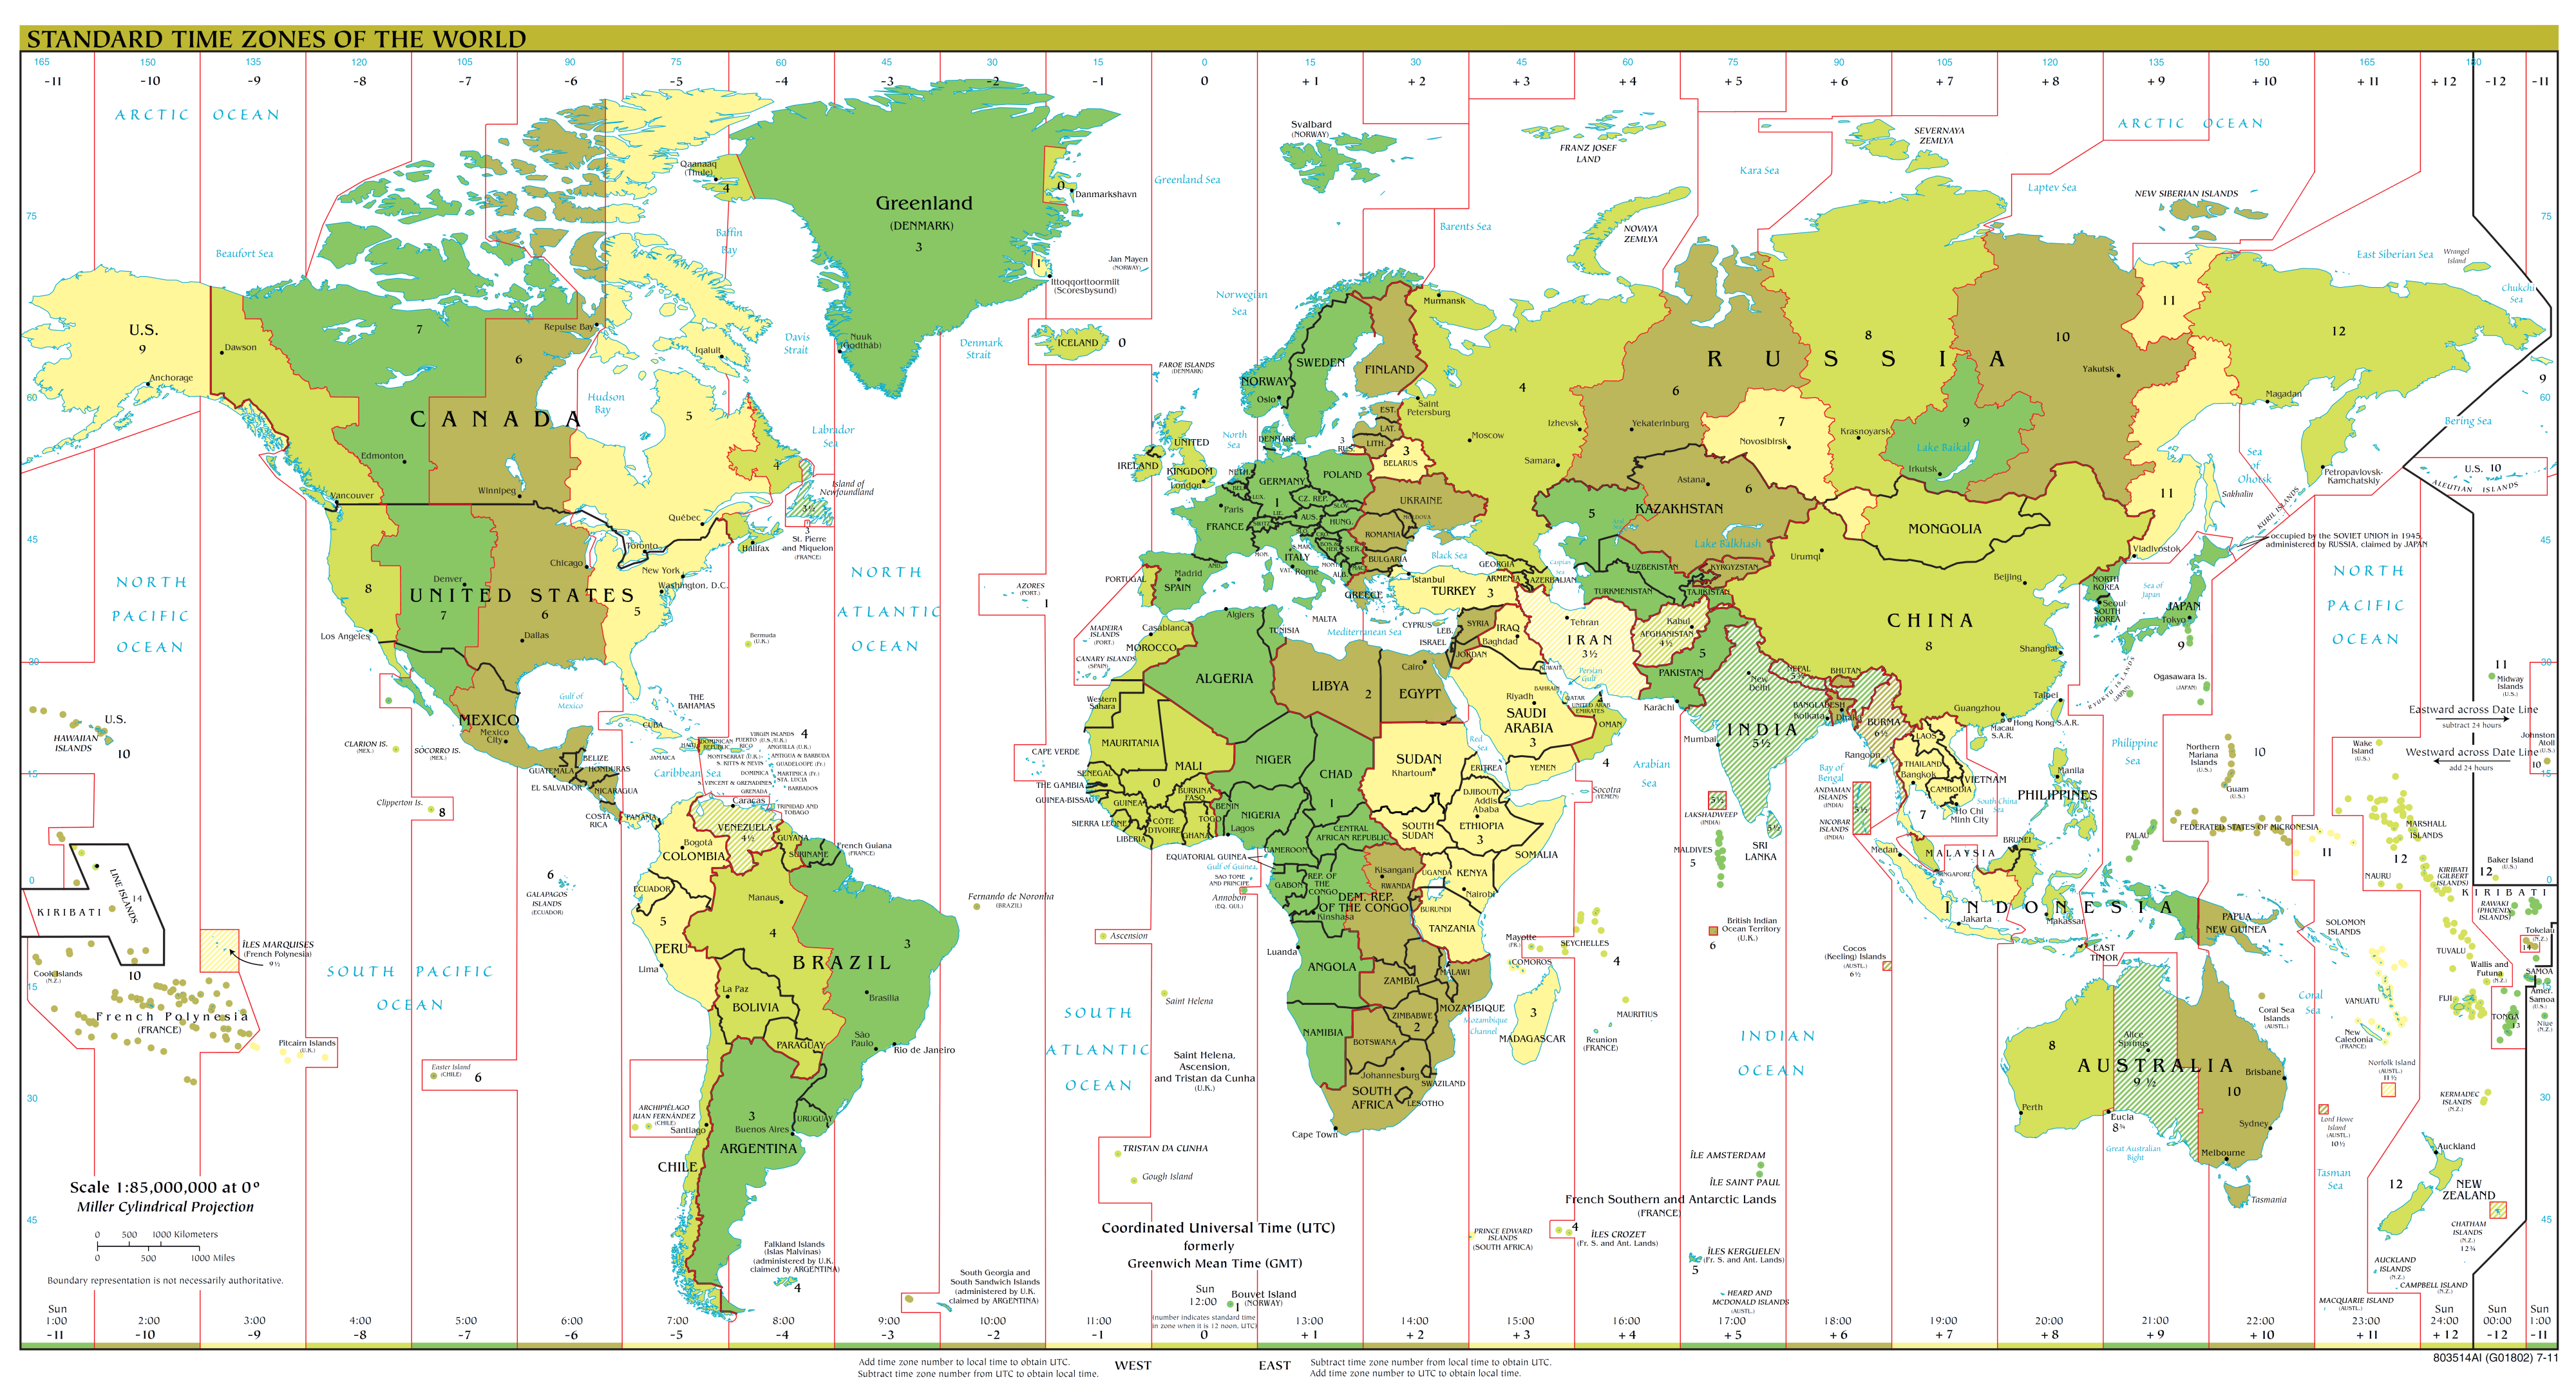 Map of the world, with the time zones outlined and sectioned off